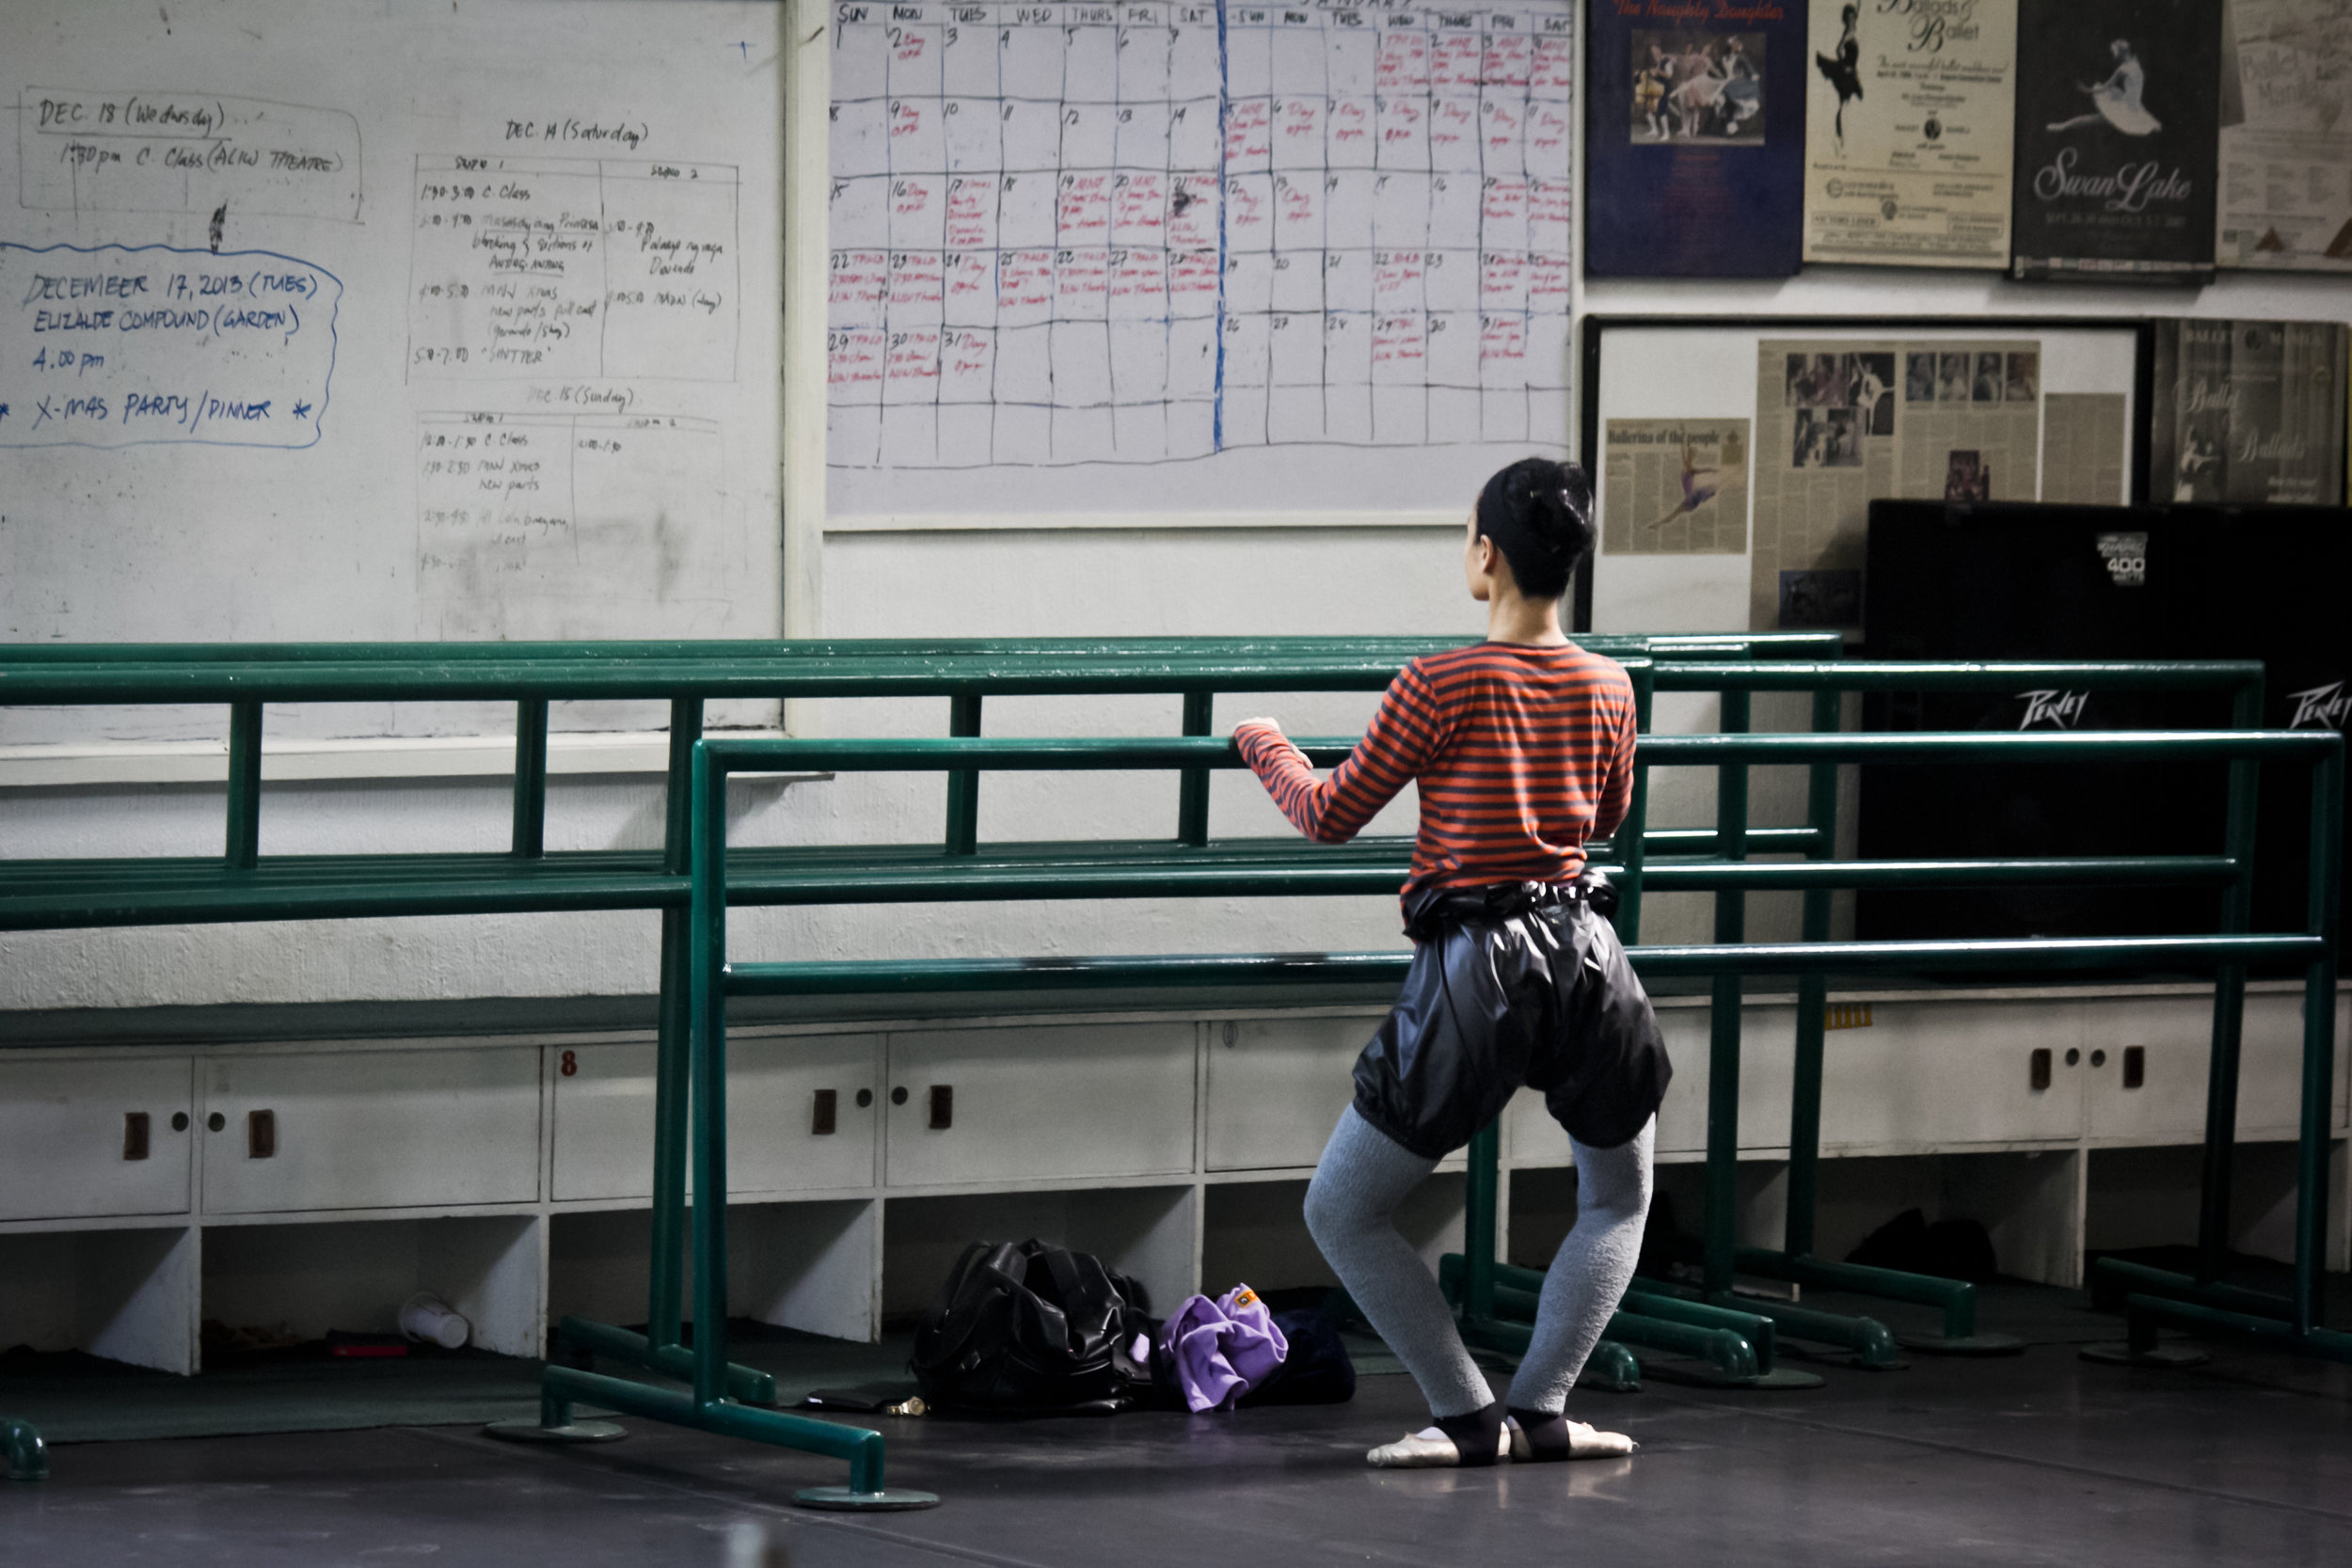 It was the first day of Ballet Manila's Christmas break in 2013 but the disciplined artistic director could be found sweating it out at the barre with her regular routine. Photo by Jimmy Villanueva